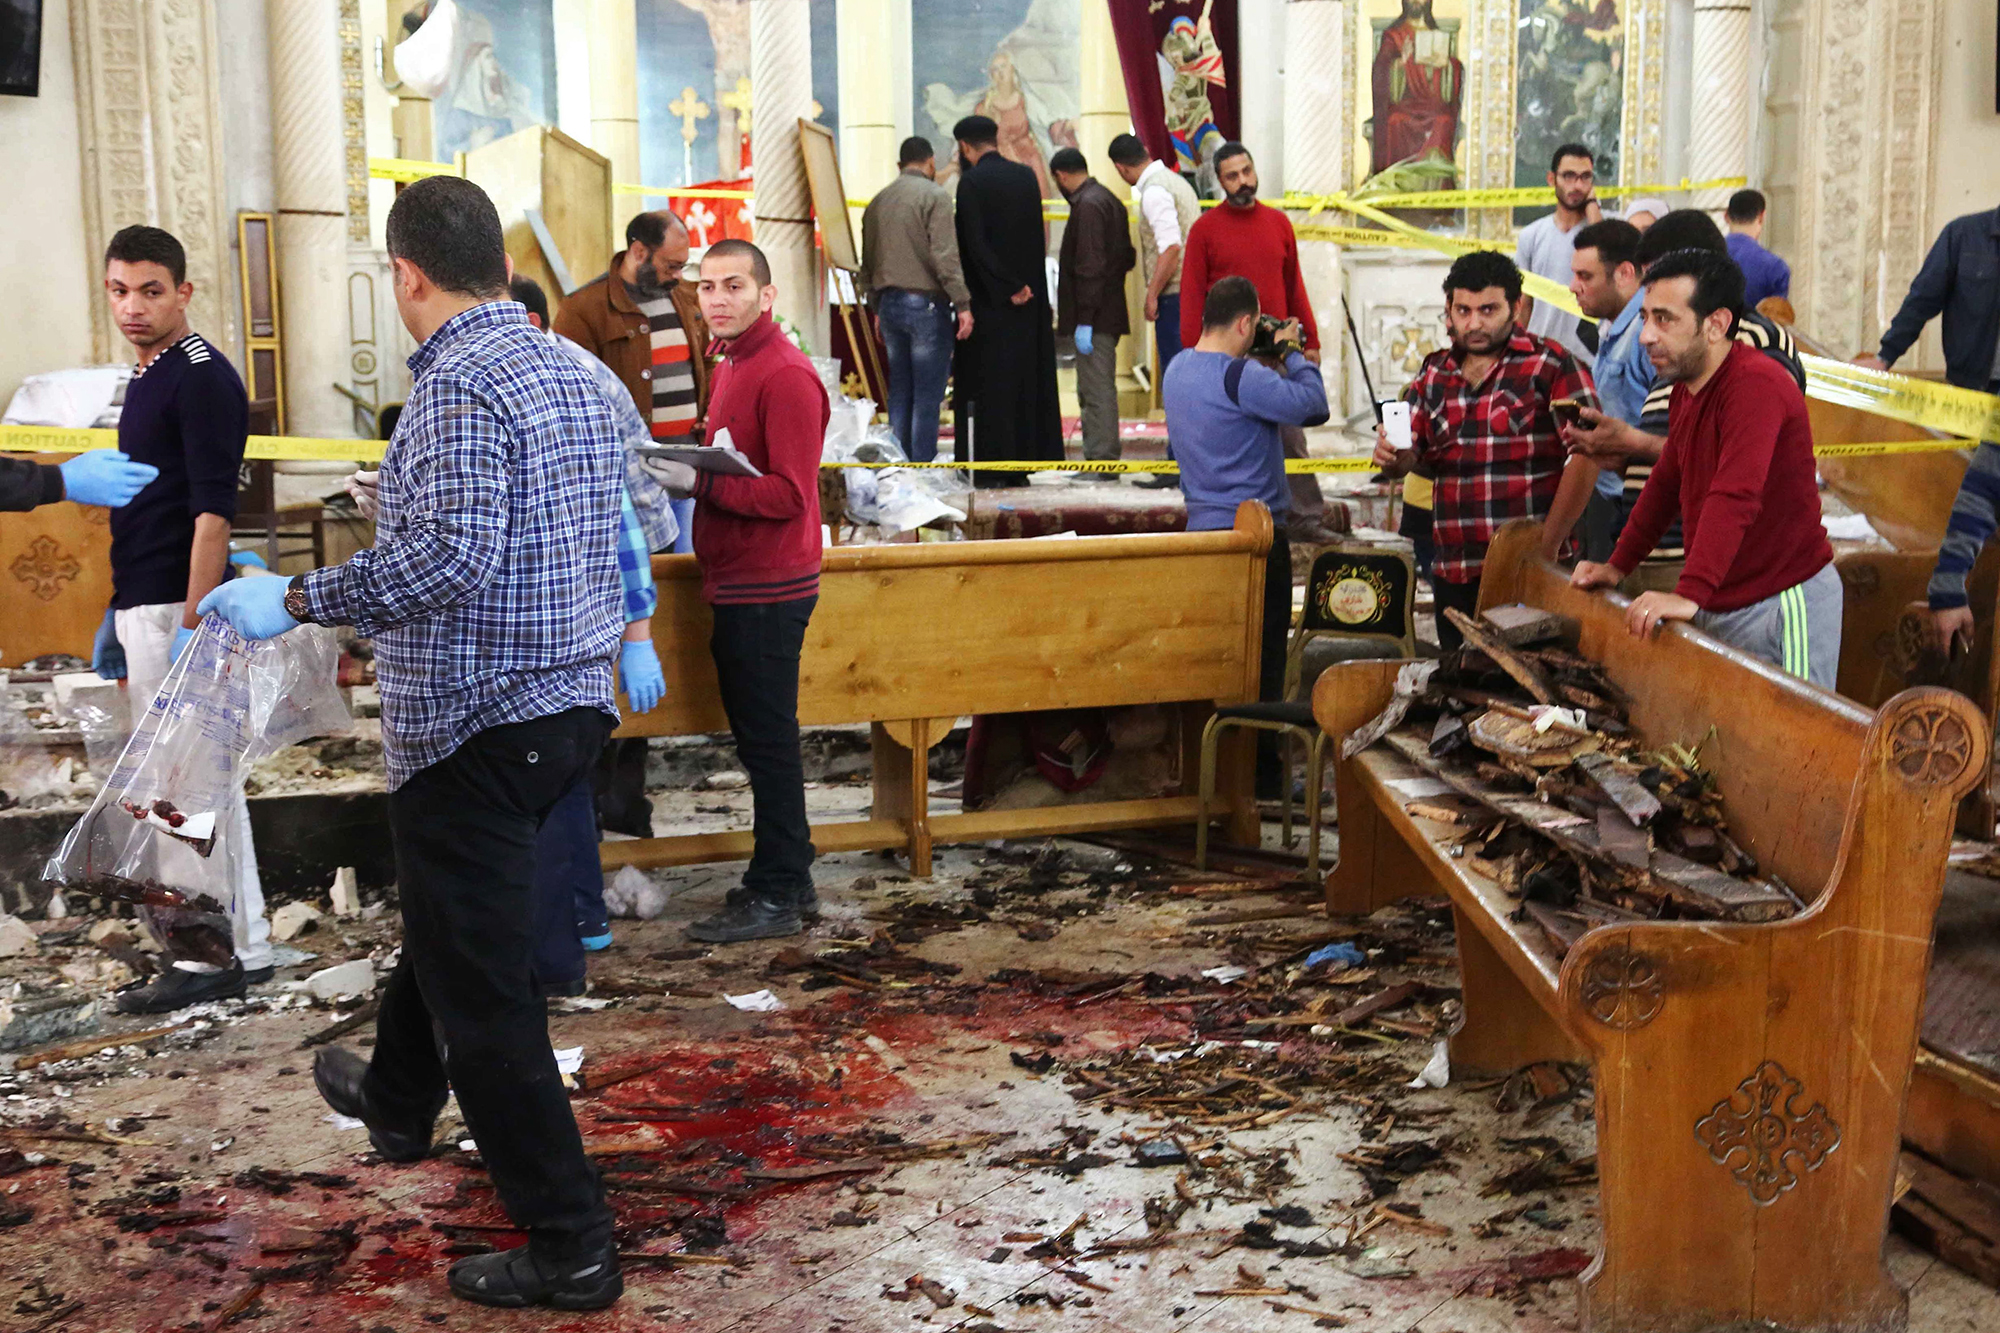 Forensics analysts collect evidence at the site of a bomb blast, which struck worshippers gathering to celebrate Palm Sunday at the Mar Girgis Coptic Church in the Nile Delta City of Tanta, 75 miles north of Cairo, on April 9, 2017.